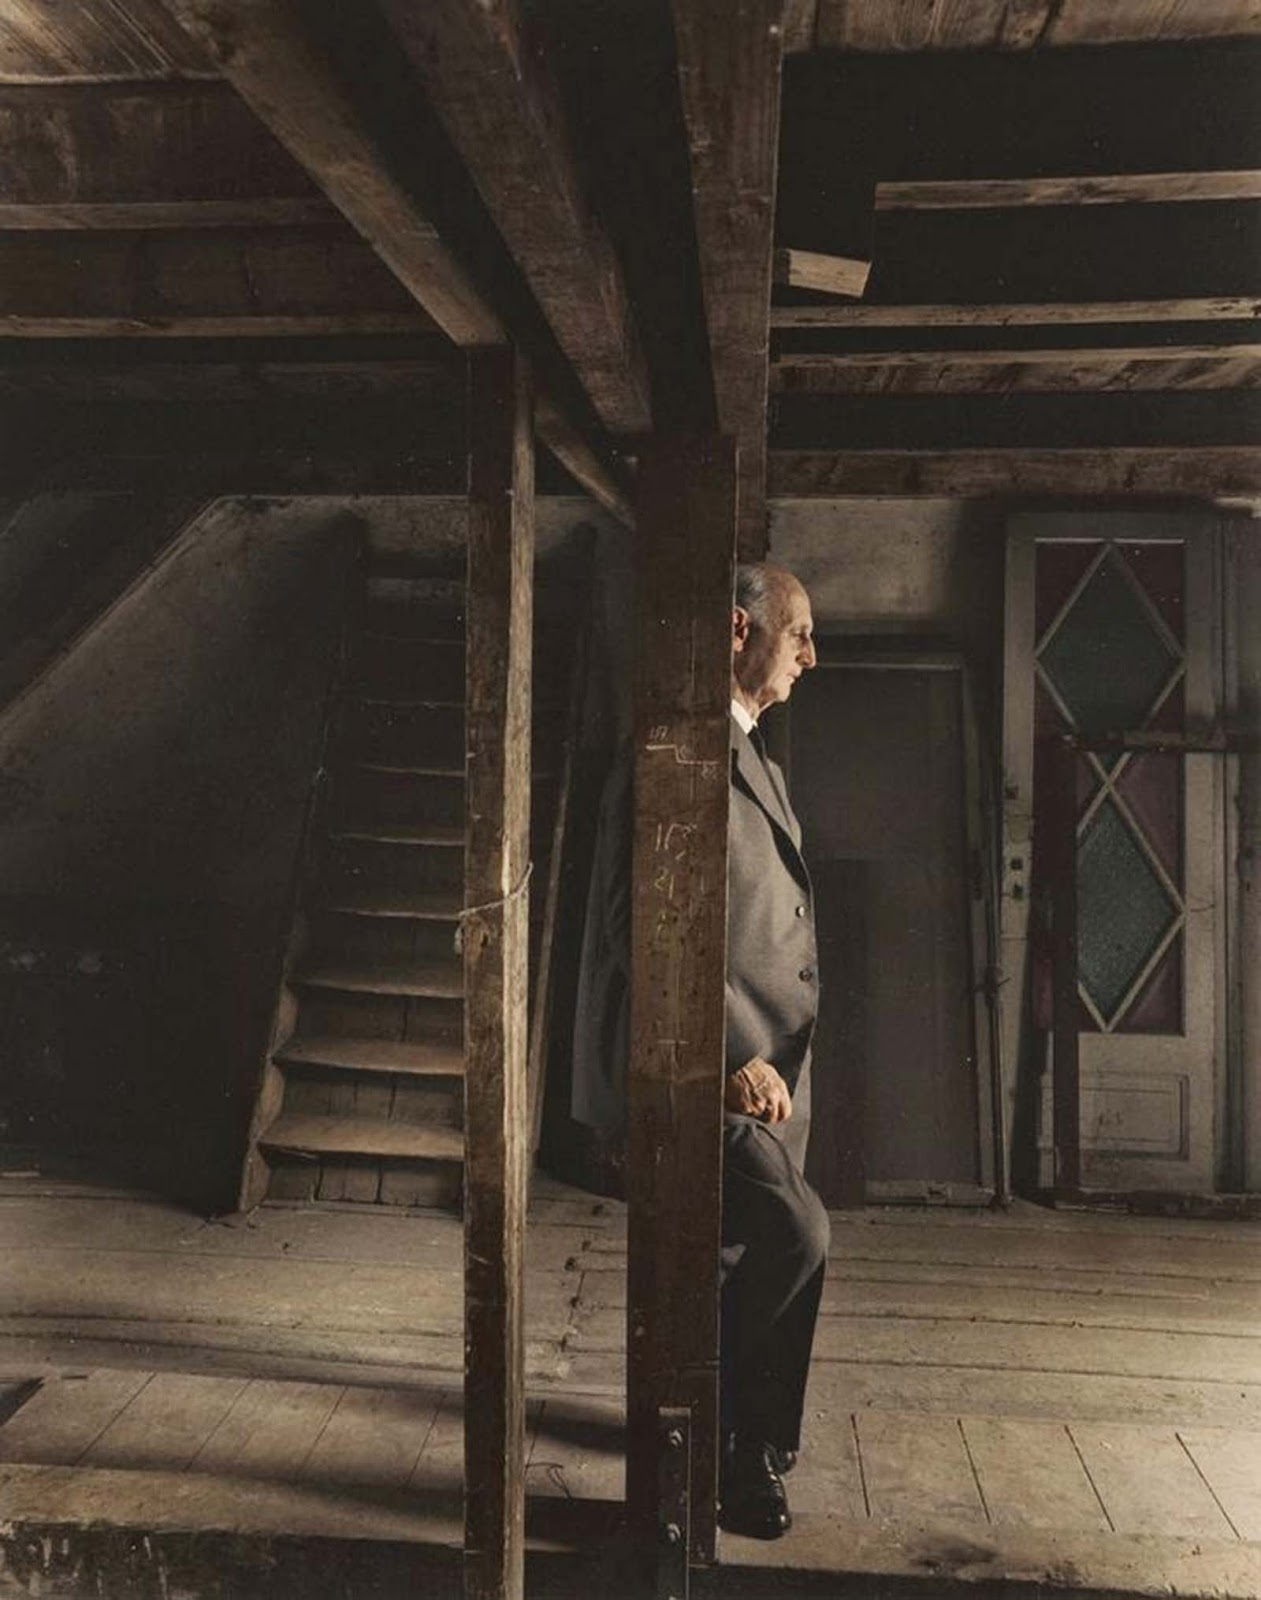 Otto Frank, Anne Frank's father and the only surviving member of the Frank family, revisiting the attic they spent the war in.